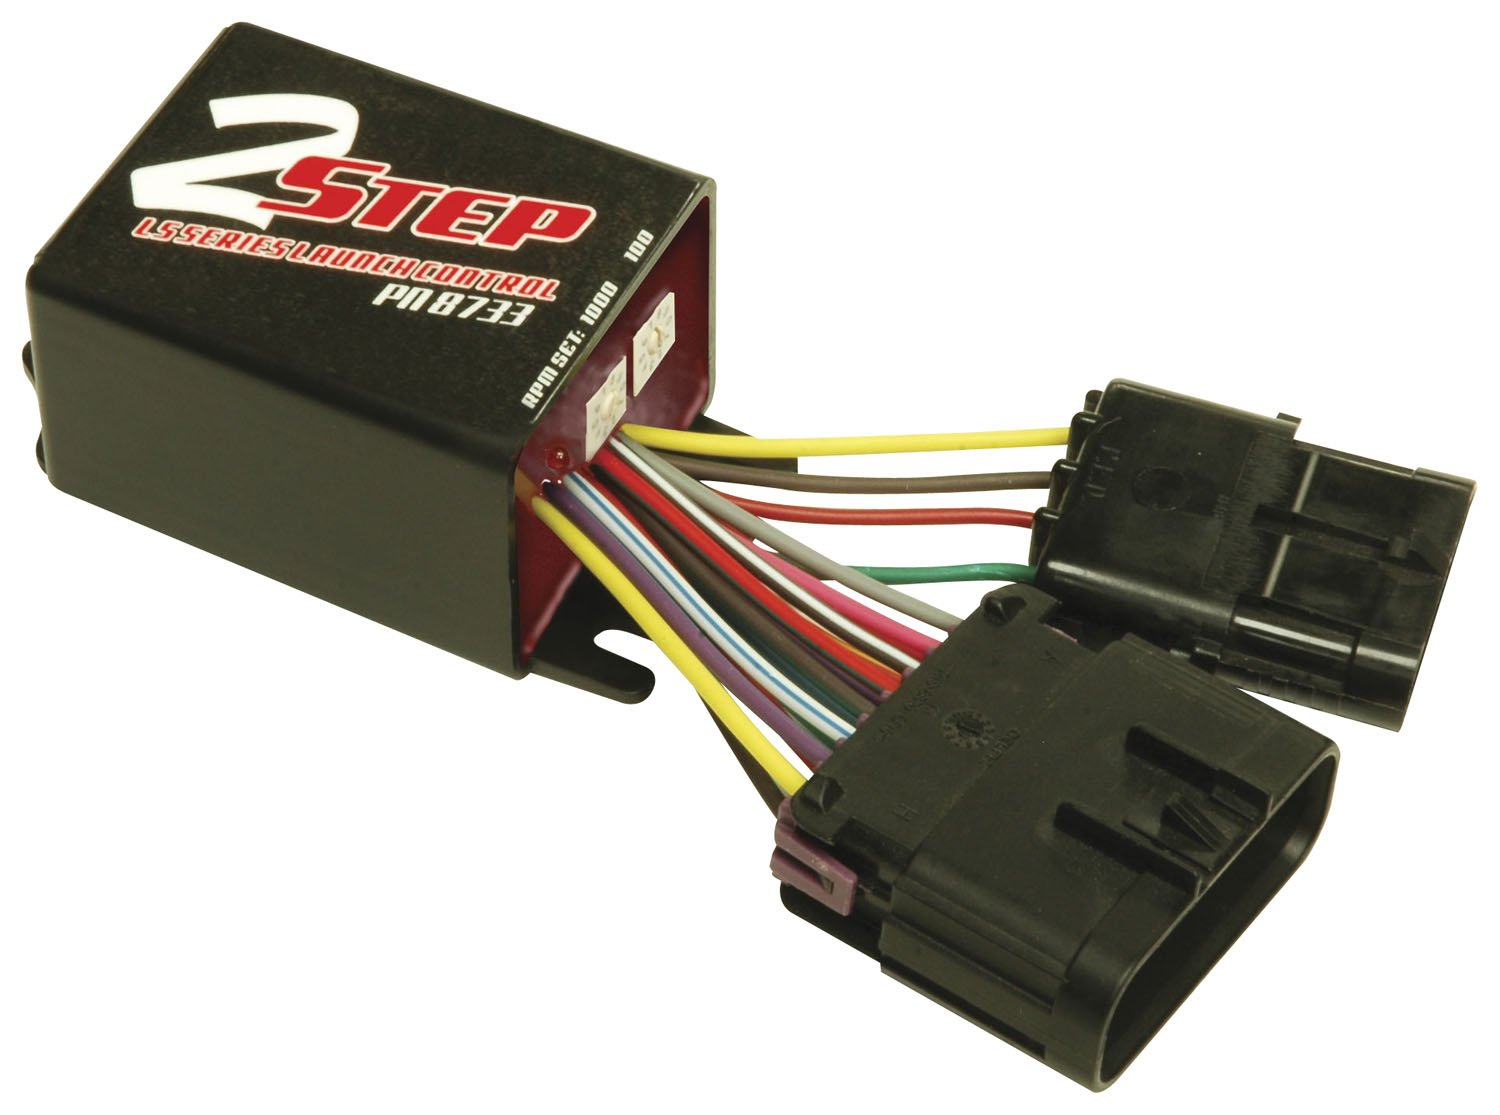 Msd Ignition 8733 2 Step Launch Control For Gm Ls Wiring Cylinder Engine Engines Automotive